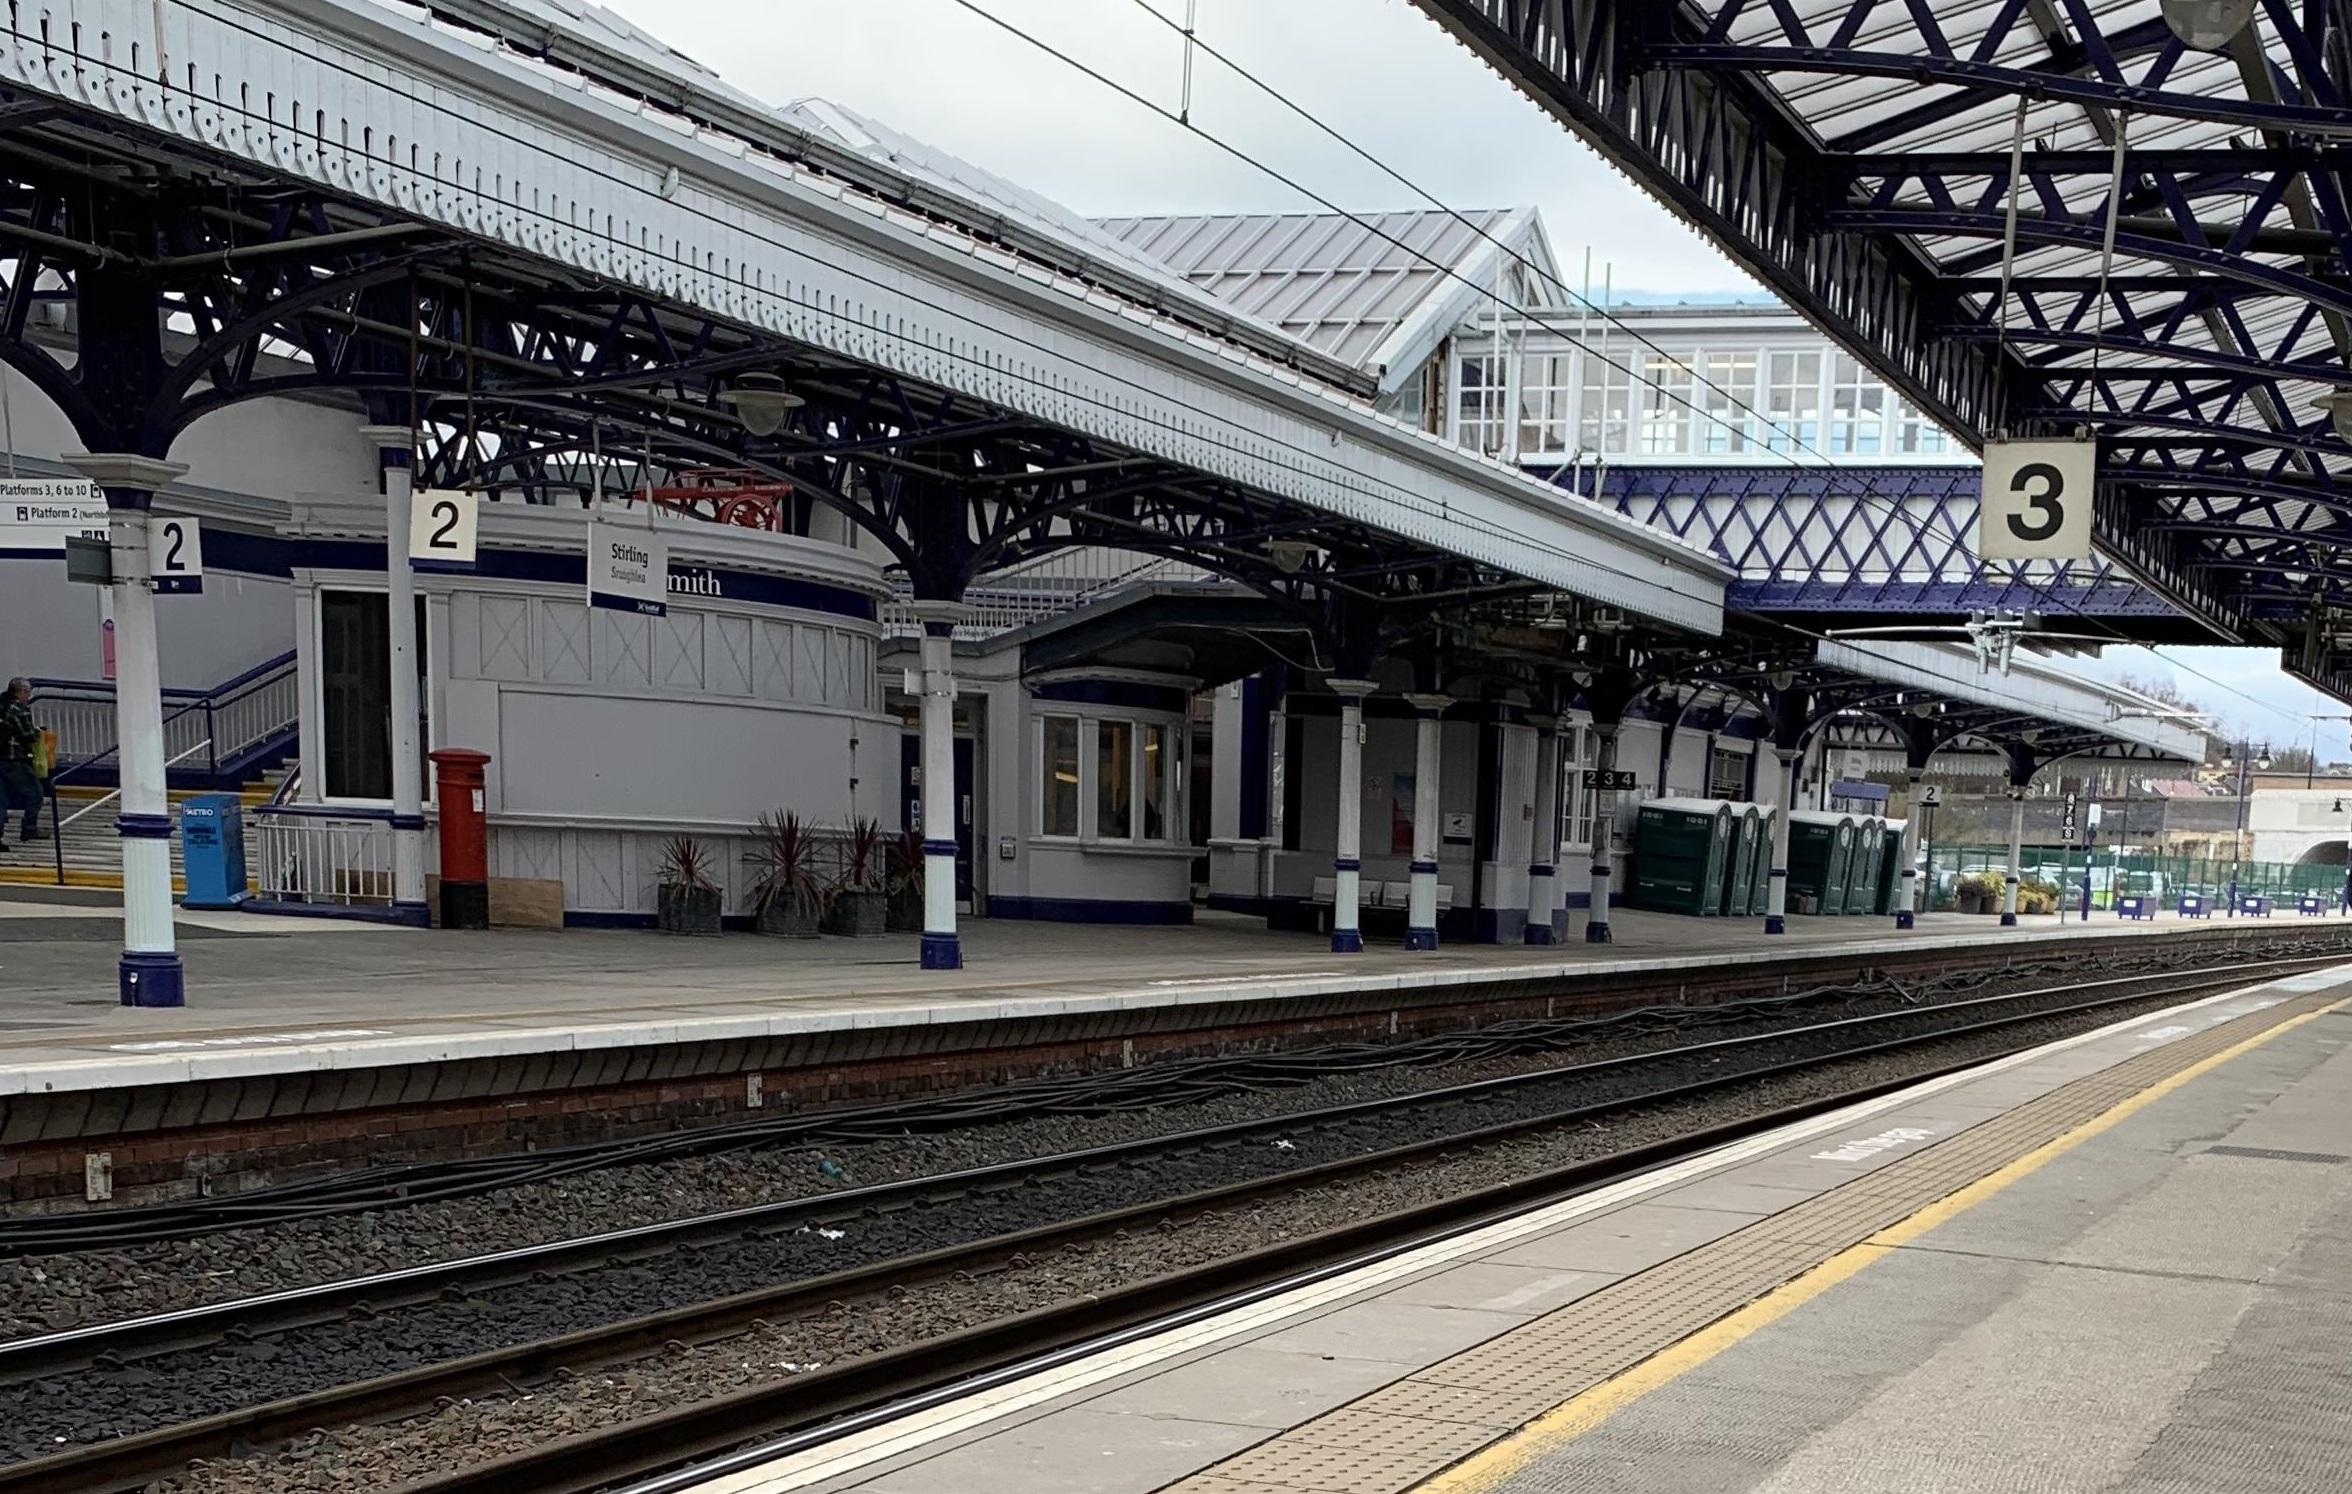 The woman was approached on the train and followed as she left at Stirling Railway Station